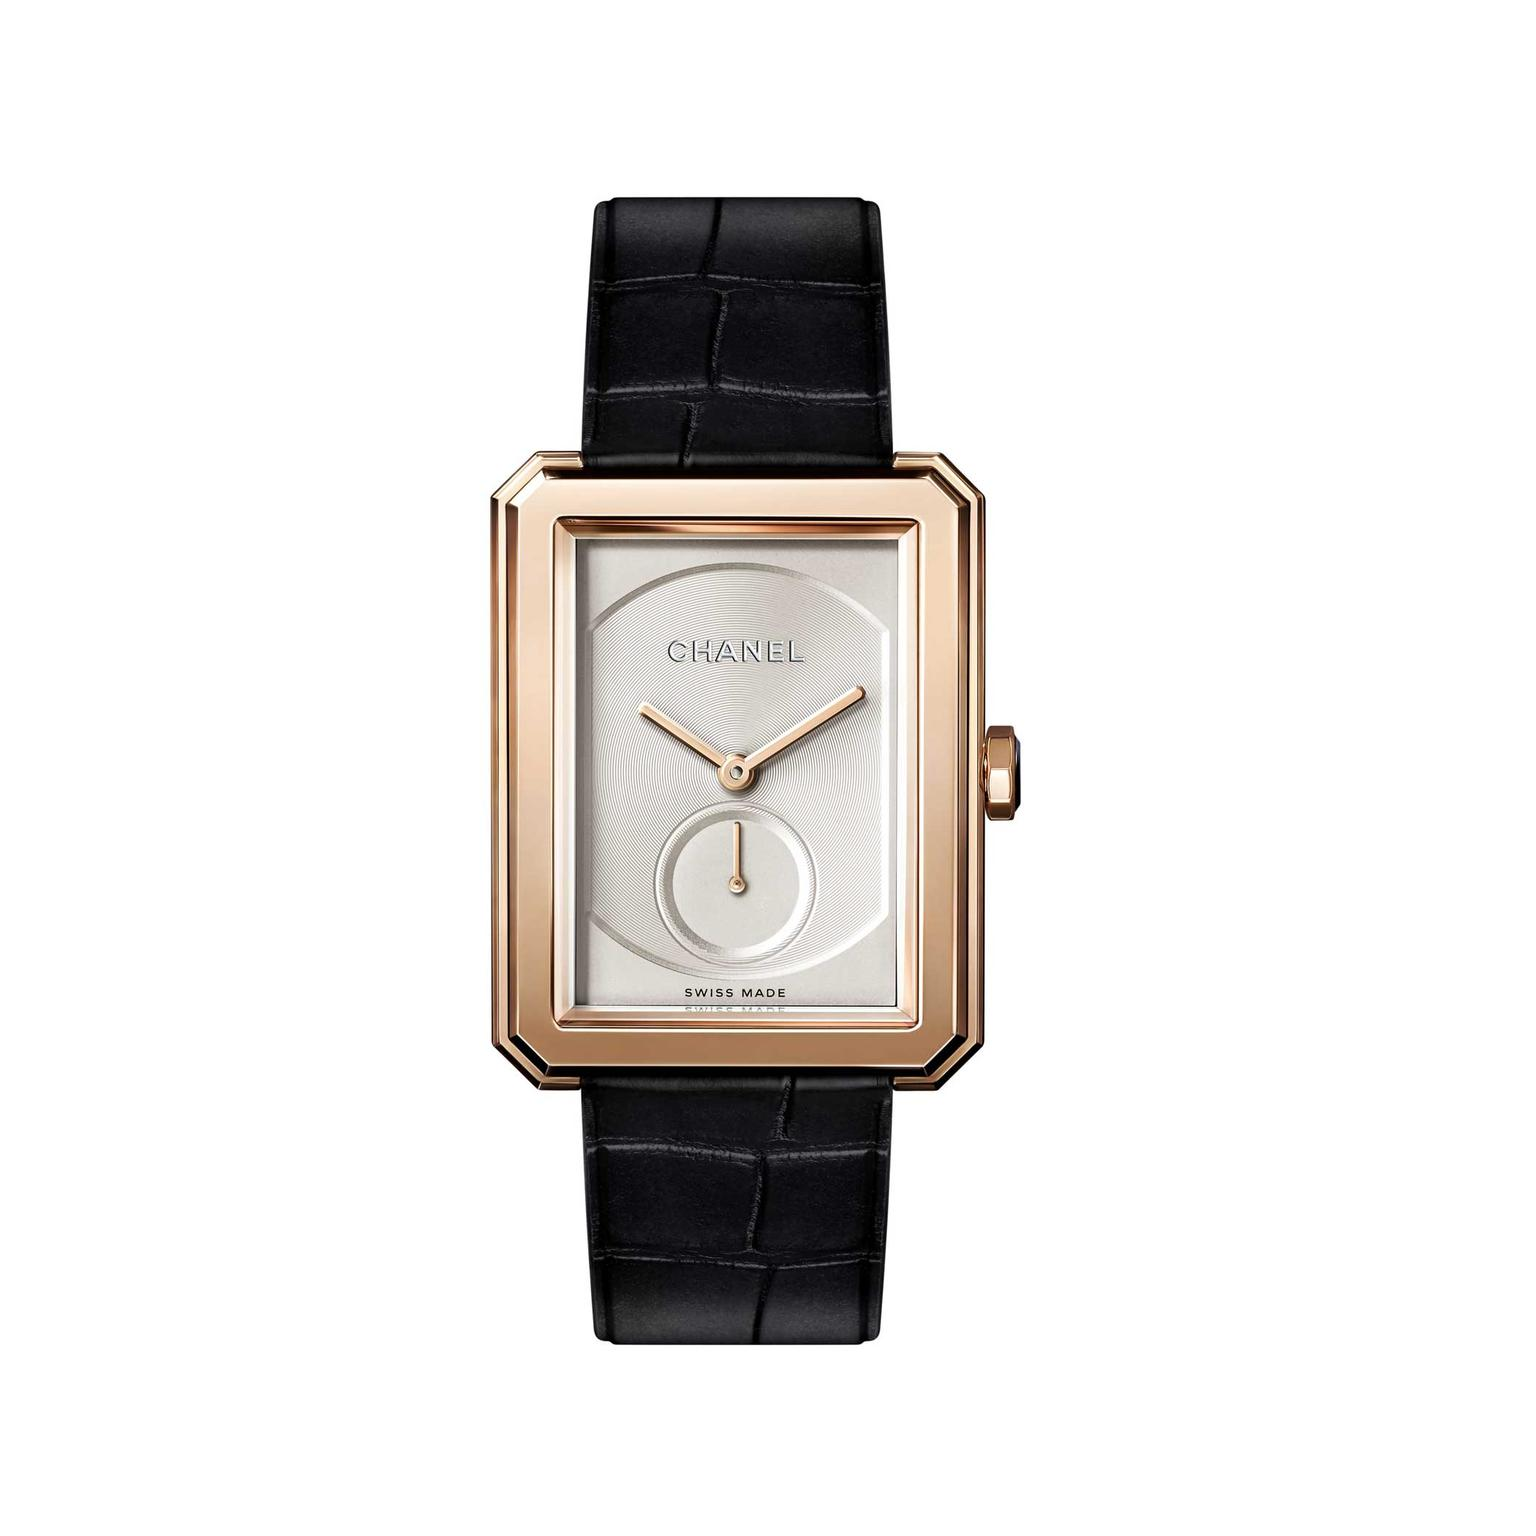 Chanel Boyfriend beige gold mechanical watch with small seconds